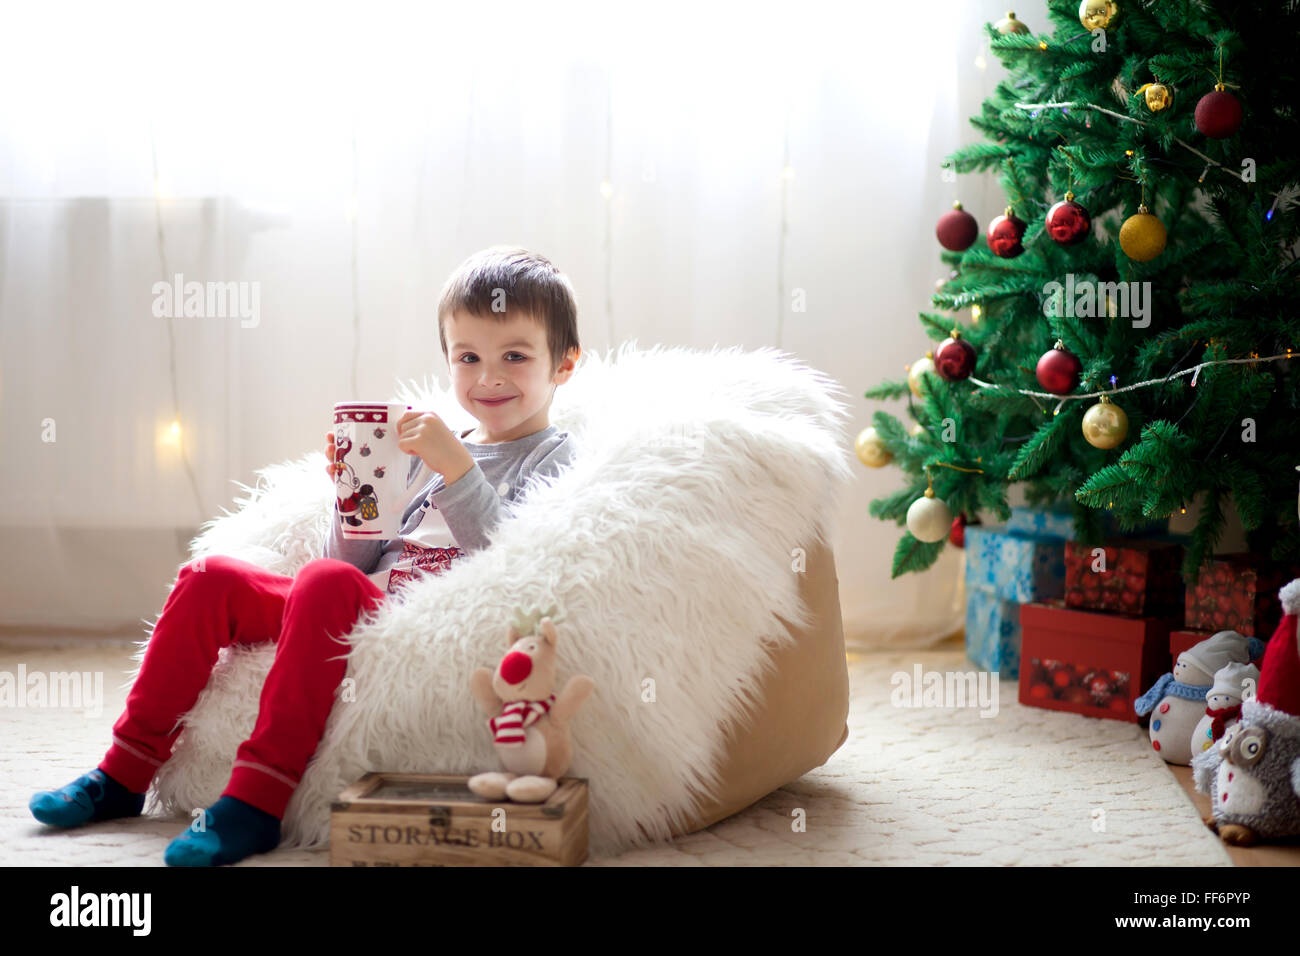 Cute boy, sitting on bean bag, drinking tea and enjoying Christmas holidays, Christmas decoration around him - Stock Image